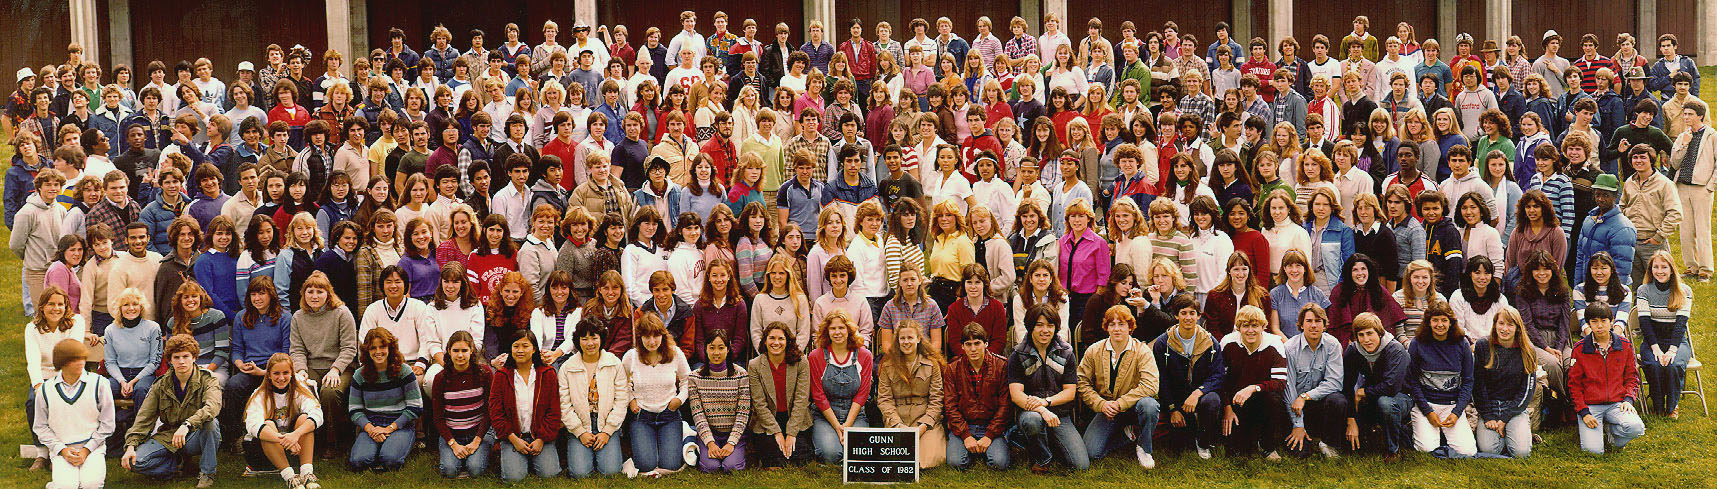 Gunn High School Class of 1982